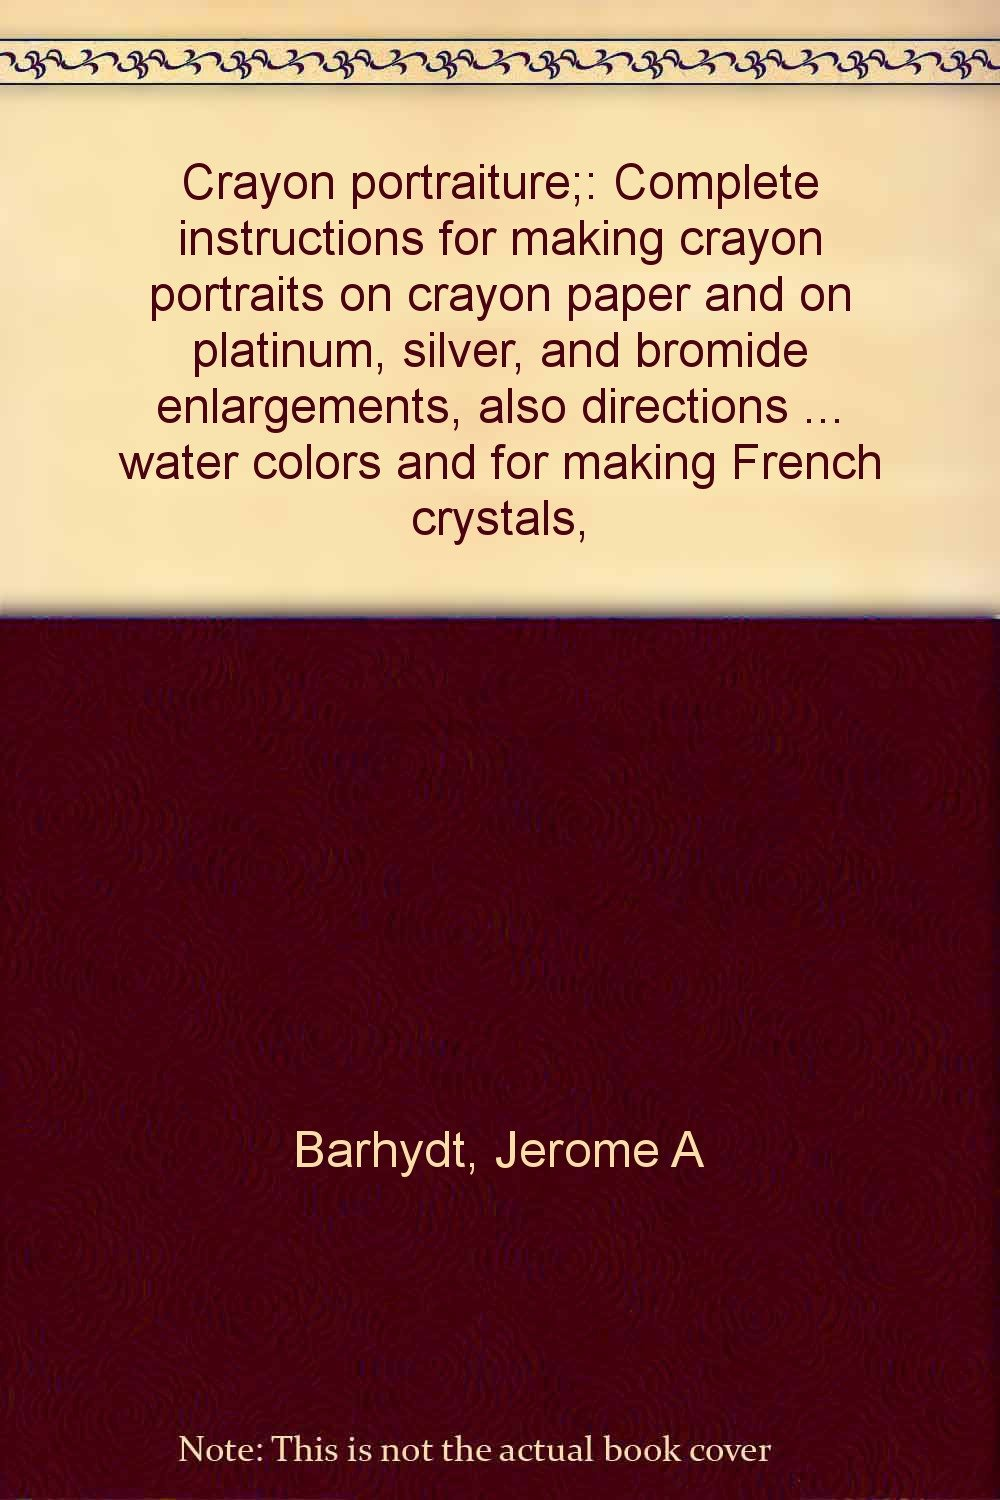 Crayon portraiture;: Complete instructions for making crayon portraits on crayon paper and on platinum, silver, and bromide enlargements, also ... water colors and for making French crystals,